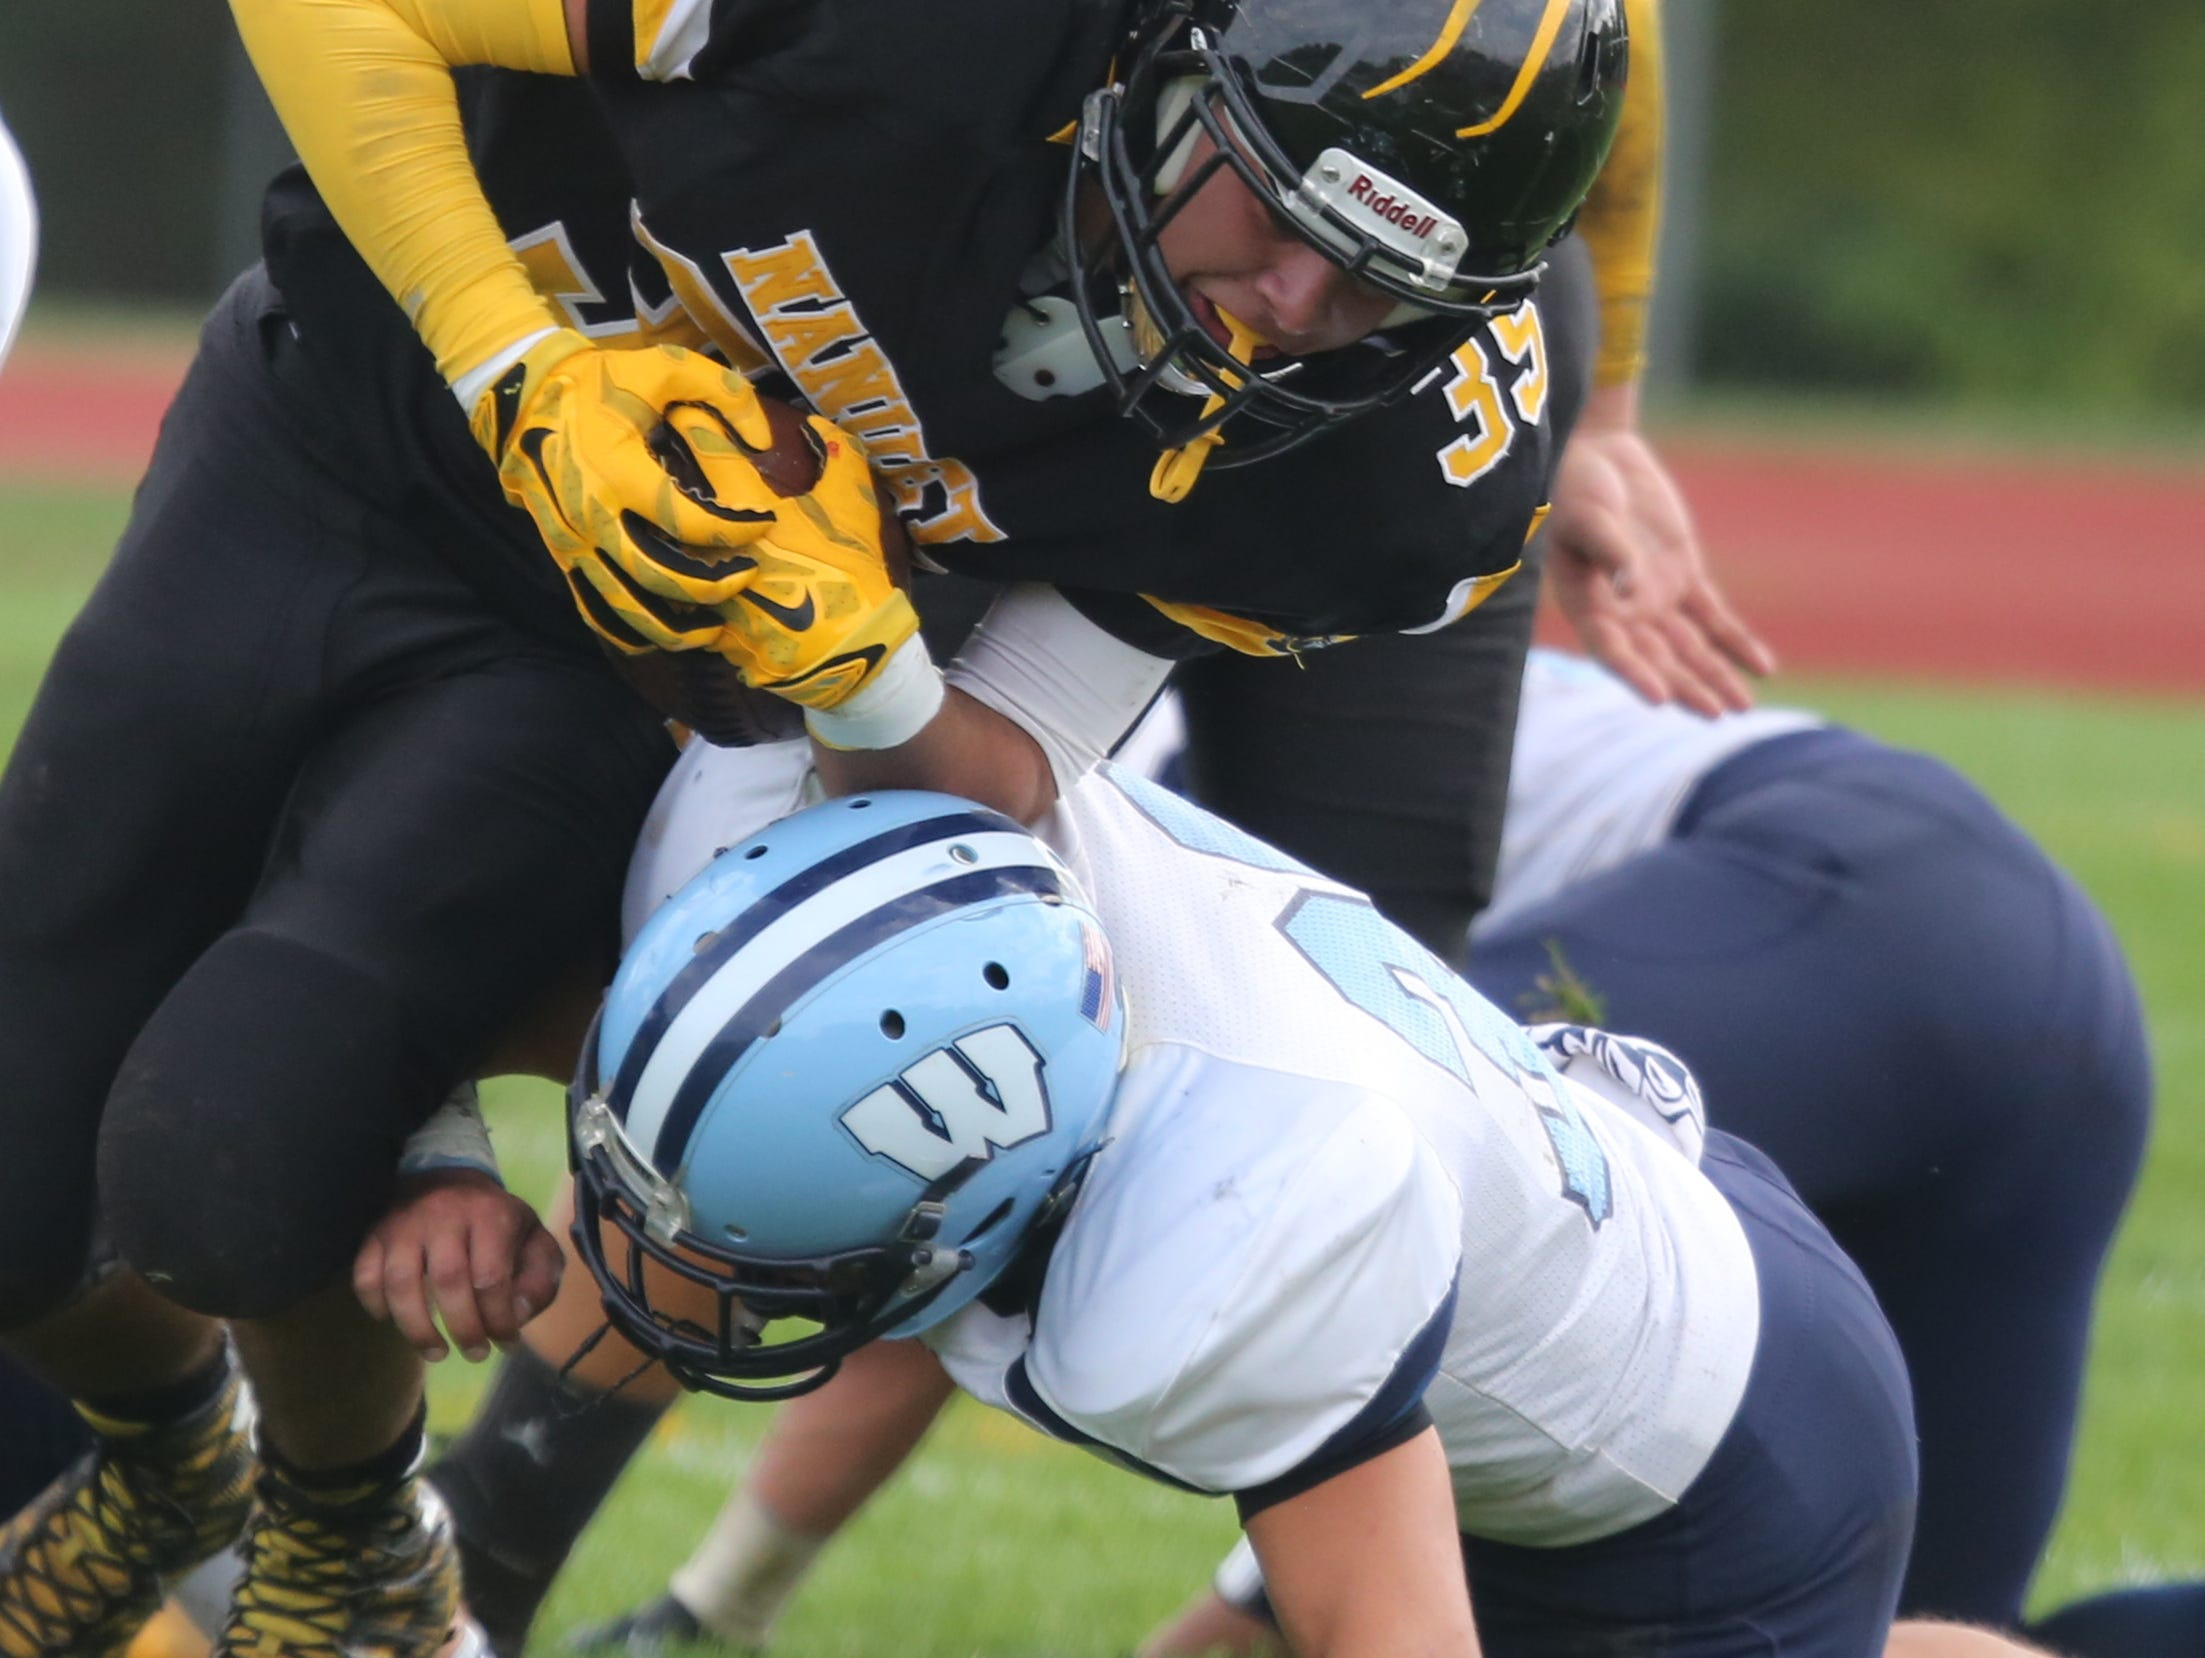 Nanuet's Matthew Sassoon is tackled during action in the Nanuet vs. Westlake football game in Nanuet, Sept. 26, 2015.